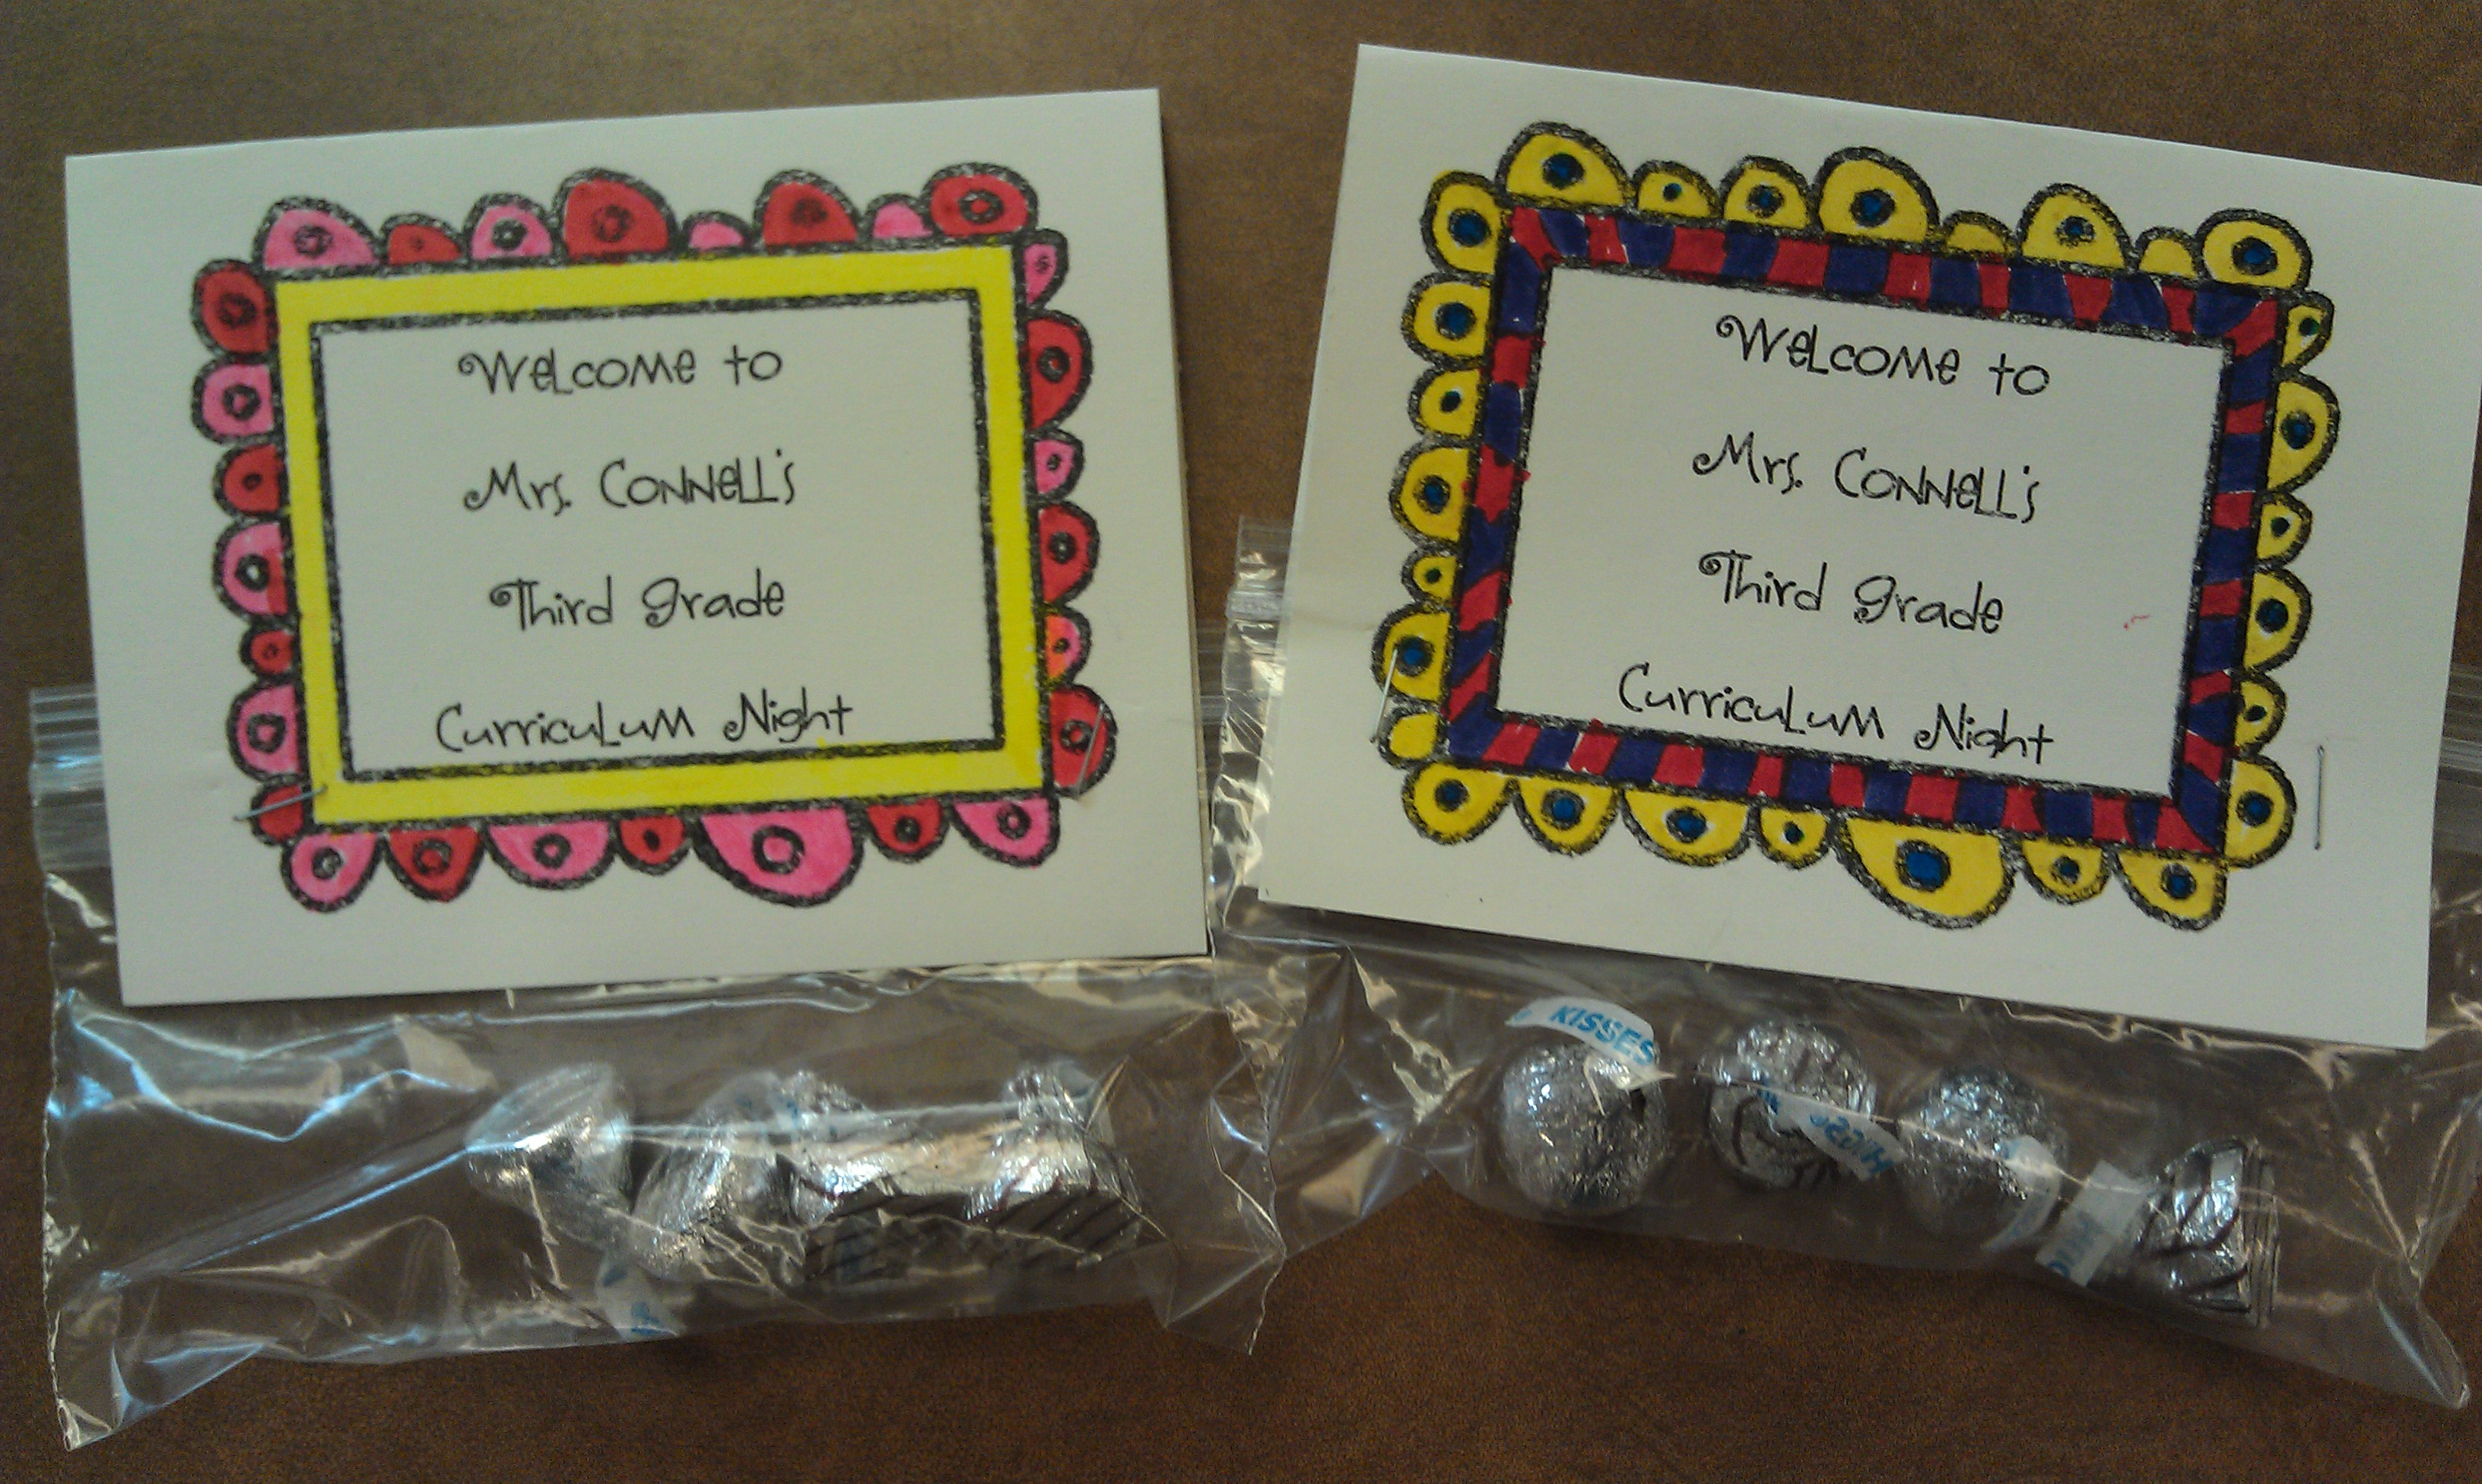 candy wrappers for curriculum night